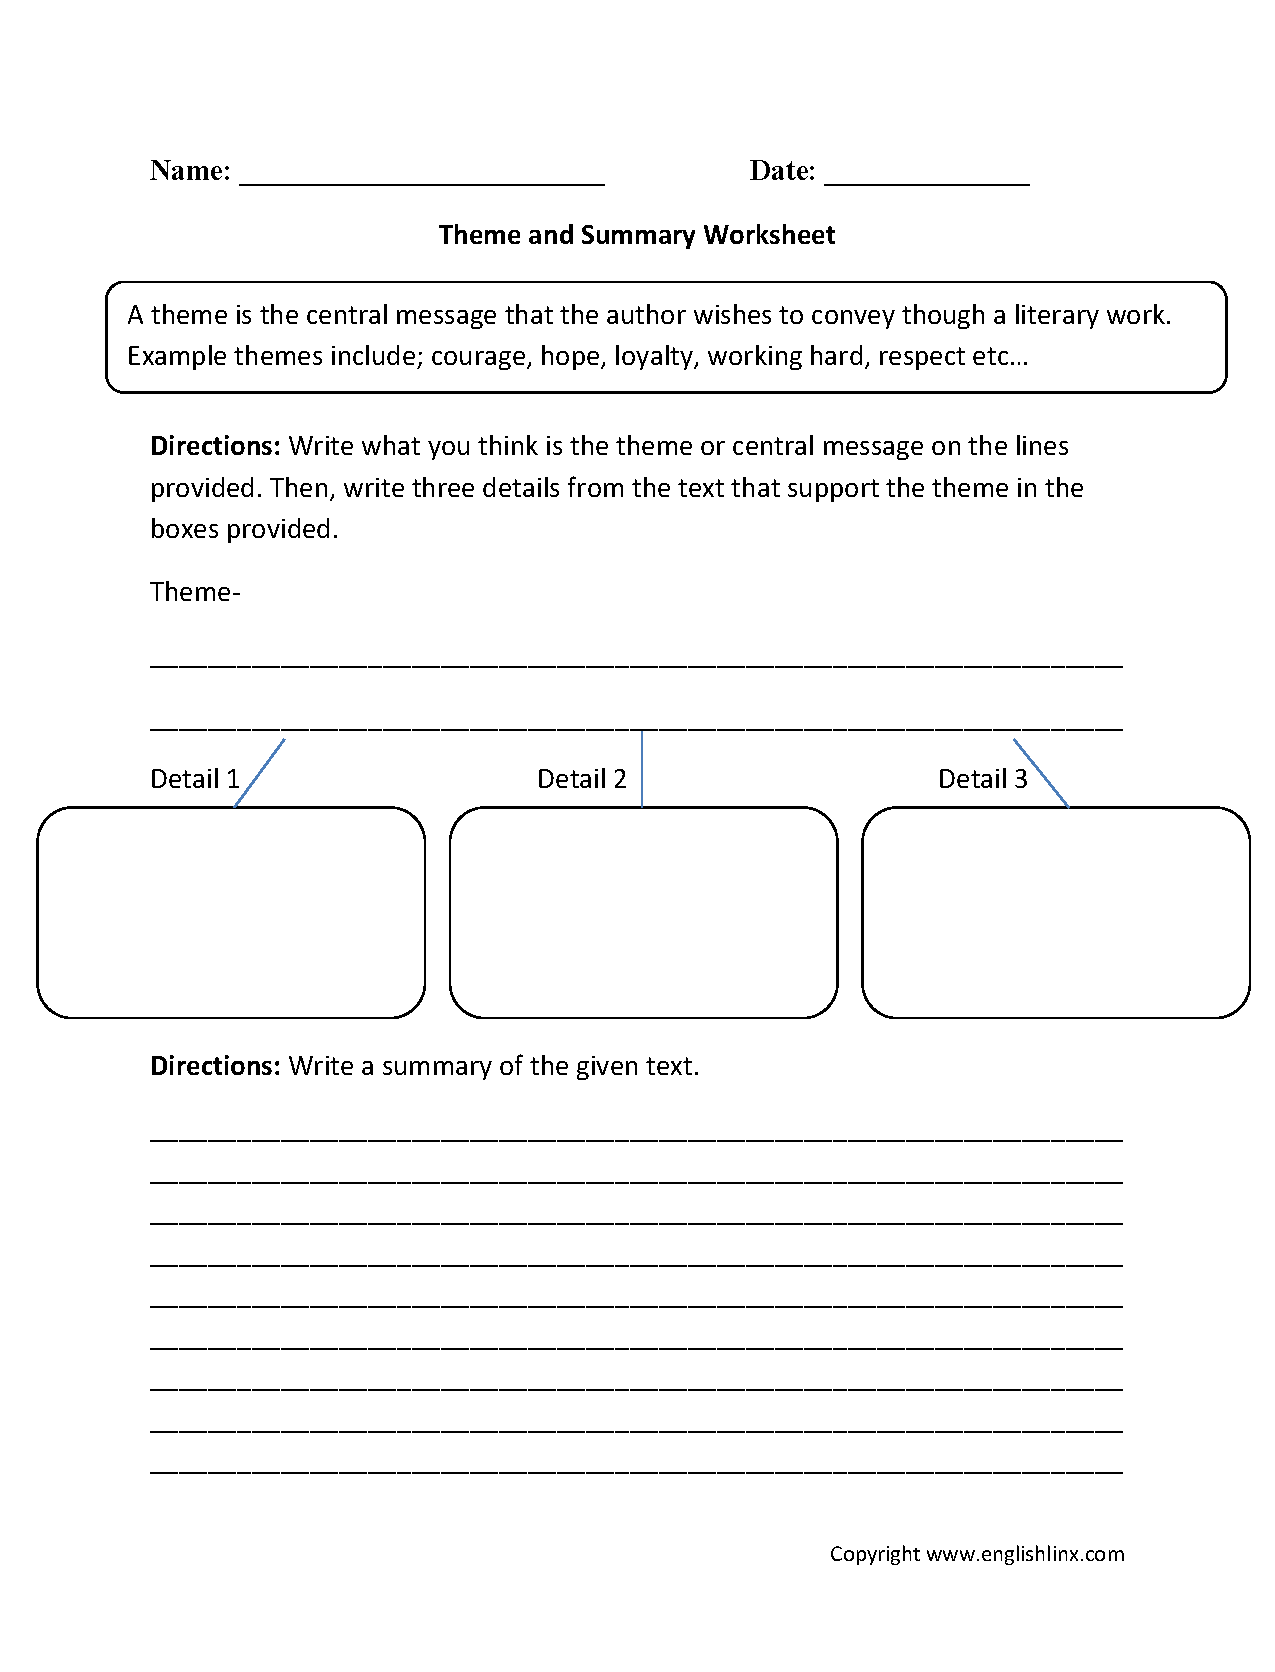 Theme And Summary Worksheets Englishlinx Com Board